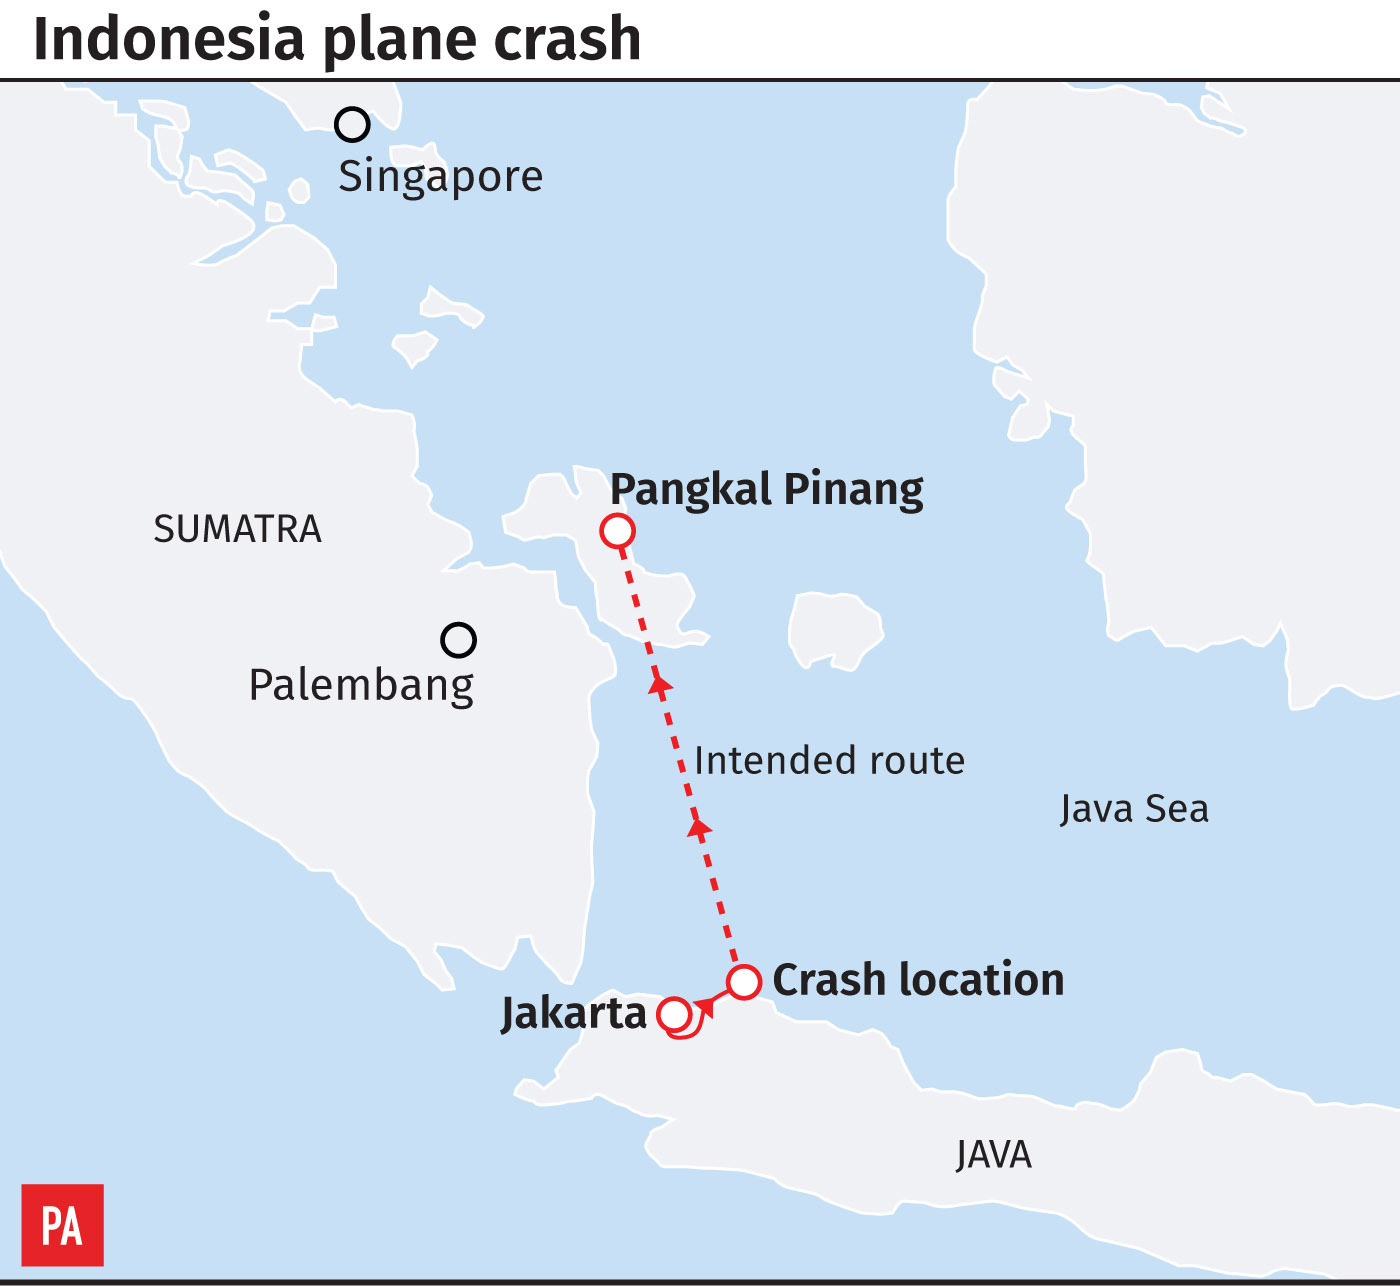 Boeing cites airline error in Indonesian crash